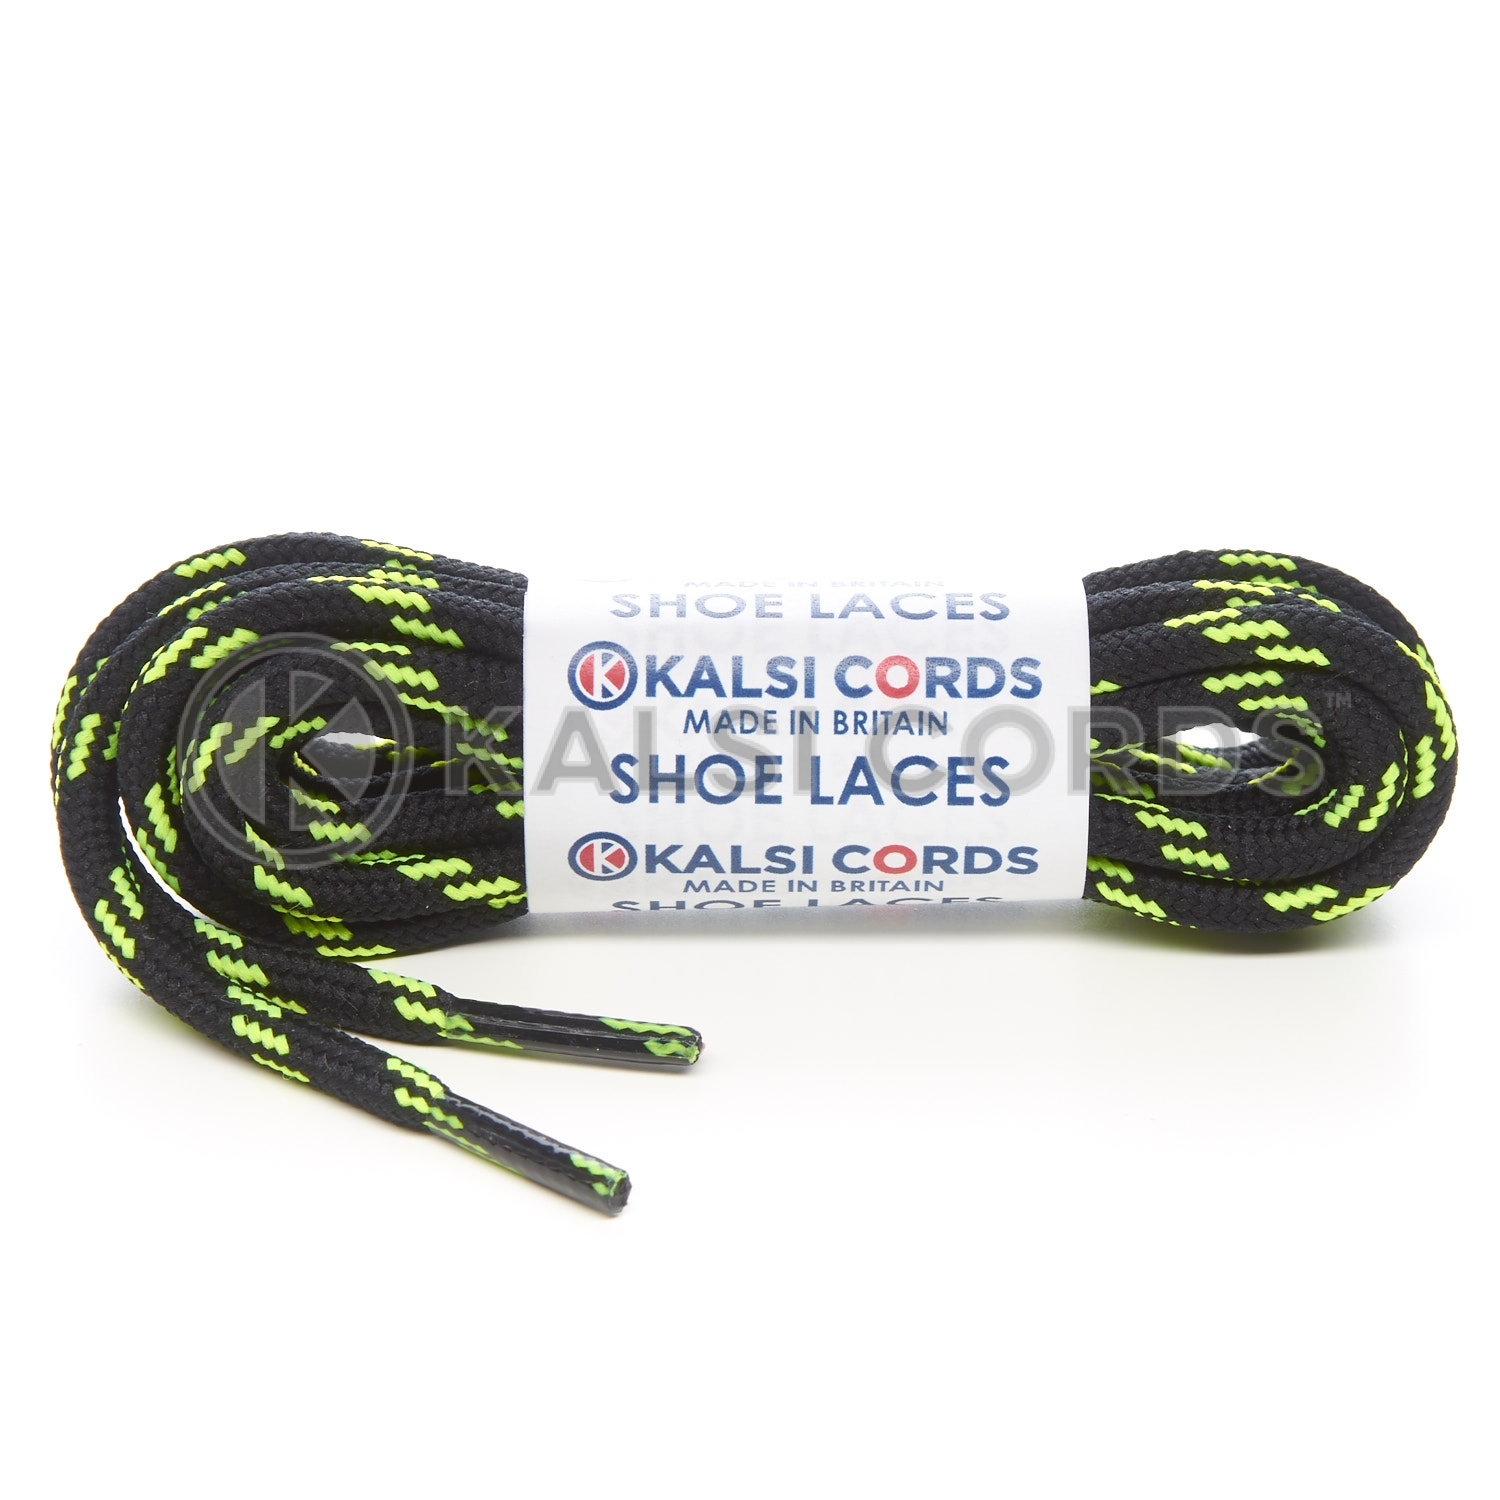 T621 5mm Round Cord Shoe Laces Black Fluorescent Yellow 4 Fleck Kids Trainers Adults Hiking Walking Boots Kalsi Cords